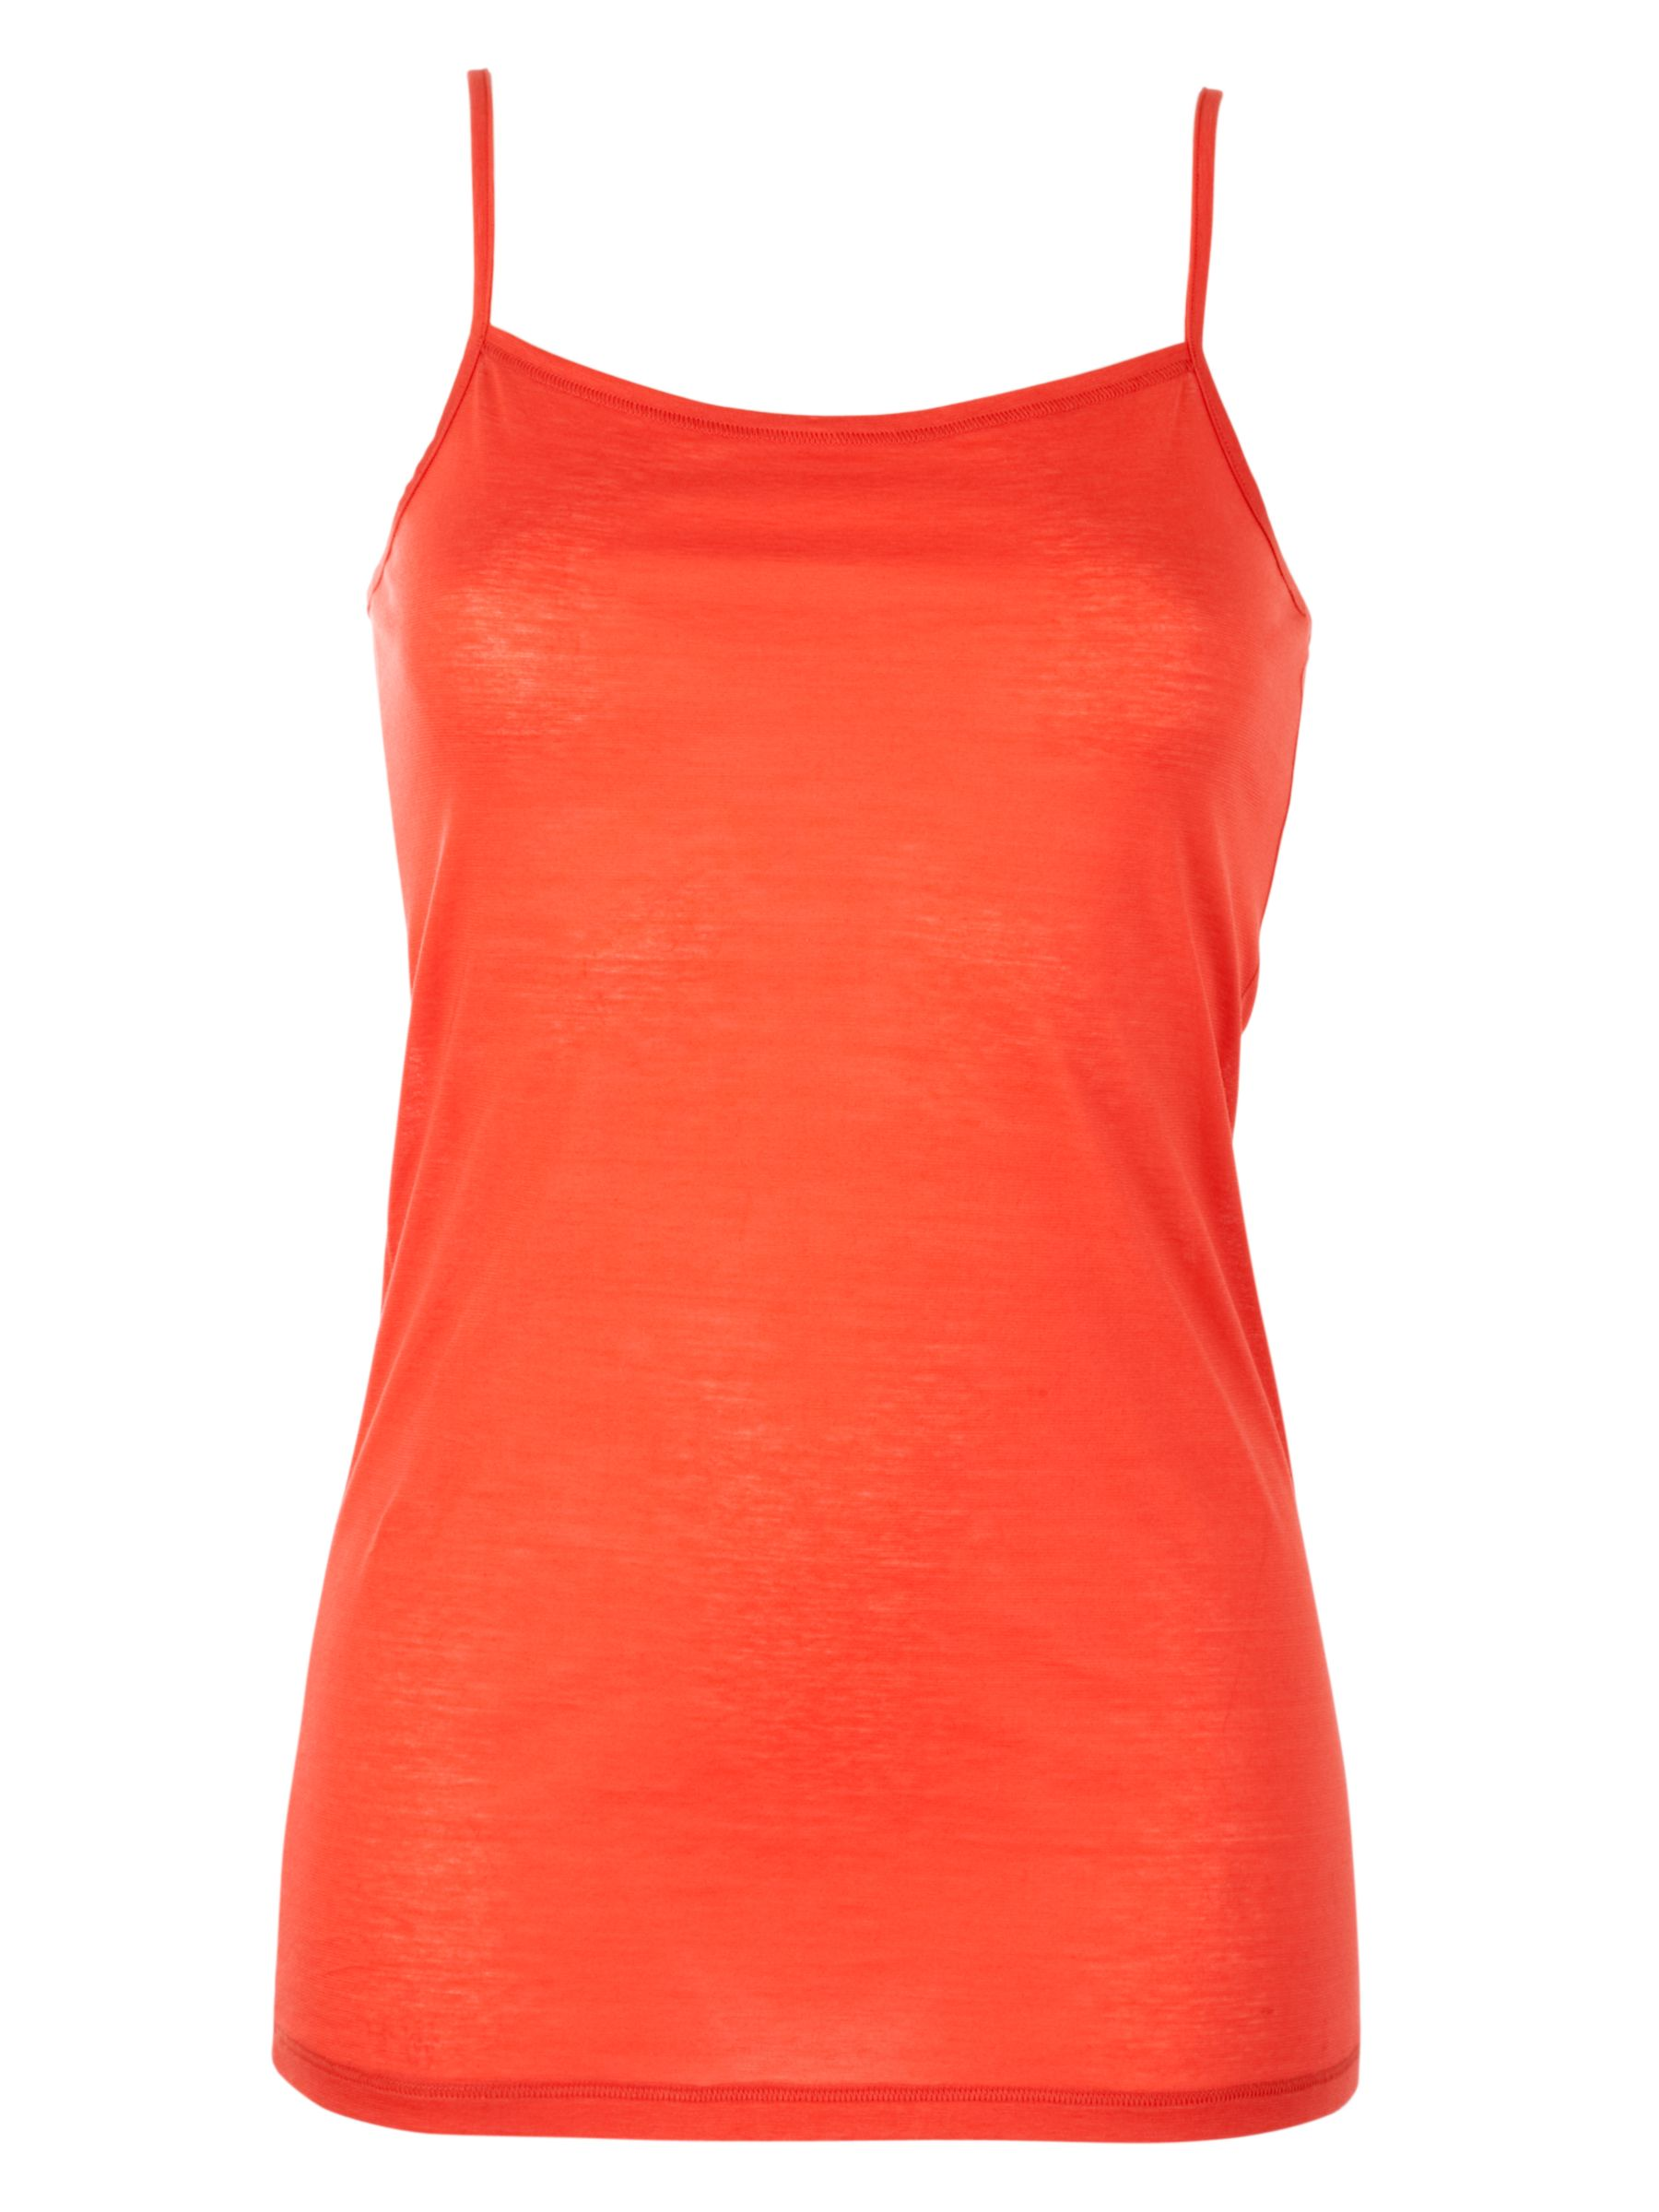 Hanro Paper Touch Camisole, Scarlet